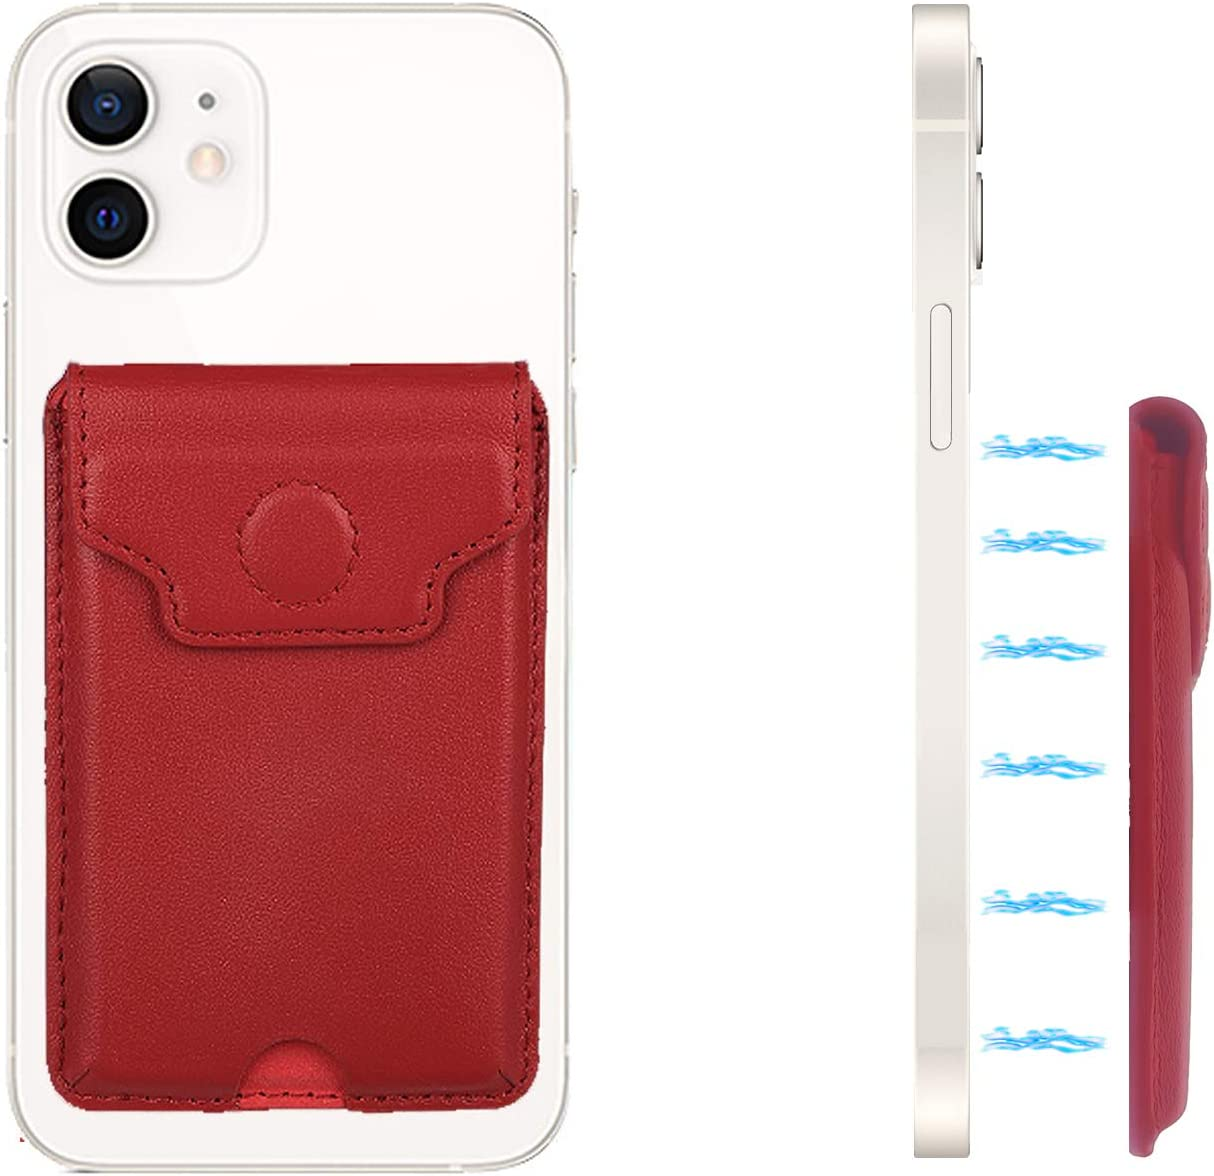 Luxury 12 pro max magsafe Wallet Card Holder for Back of Phone Leather mag Safe Wallet Phone Magnet Wallet Stick on Magnetic Compatible with iPhone 12/12 Pro/12 Pro MAX(Red)